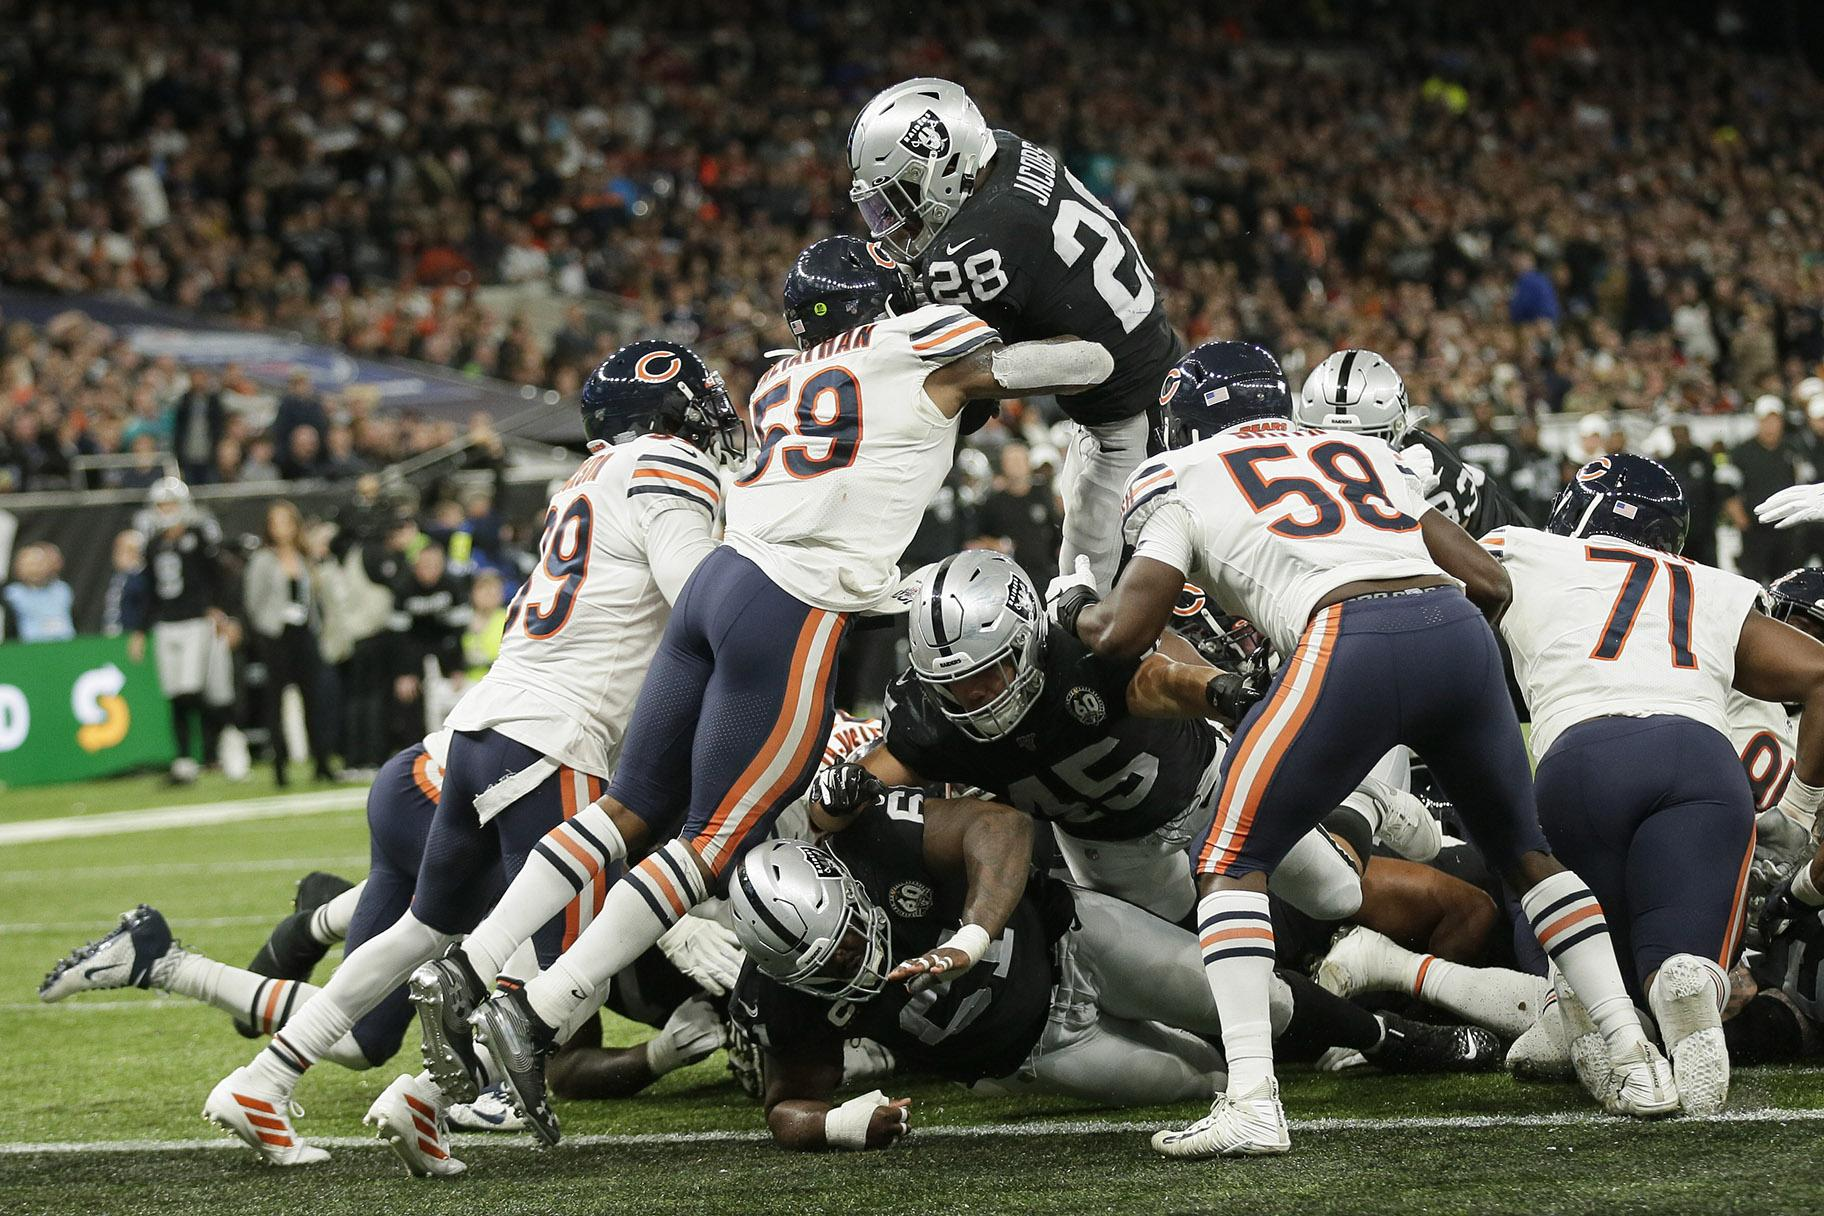 Oakland Raiders running back Josh Jacobs (28) goes in for a touchdown during the second half of an NFL football game against the Chicago Bears at Tottenham Hotspur Stadium, Sunday, Oct. 6, 2019, in London. (AP Photo / Tim Ireland)